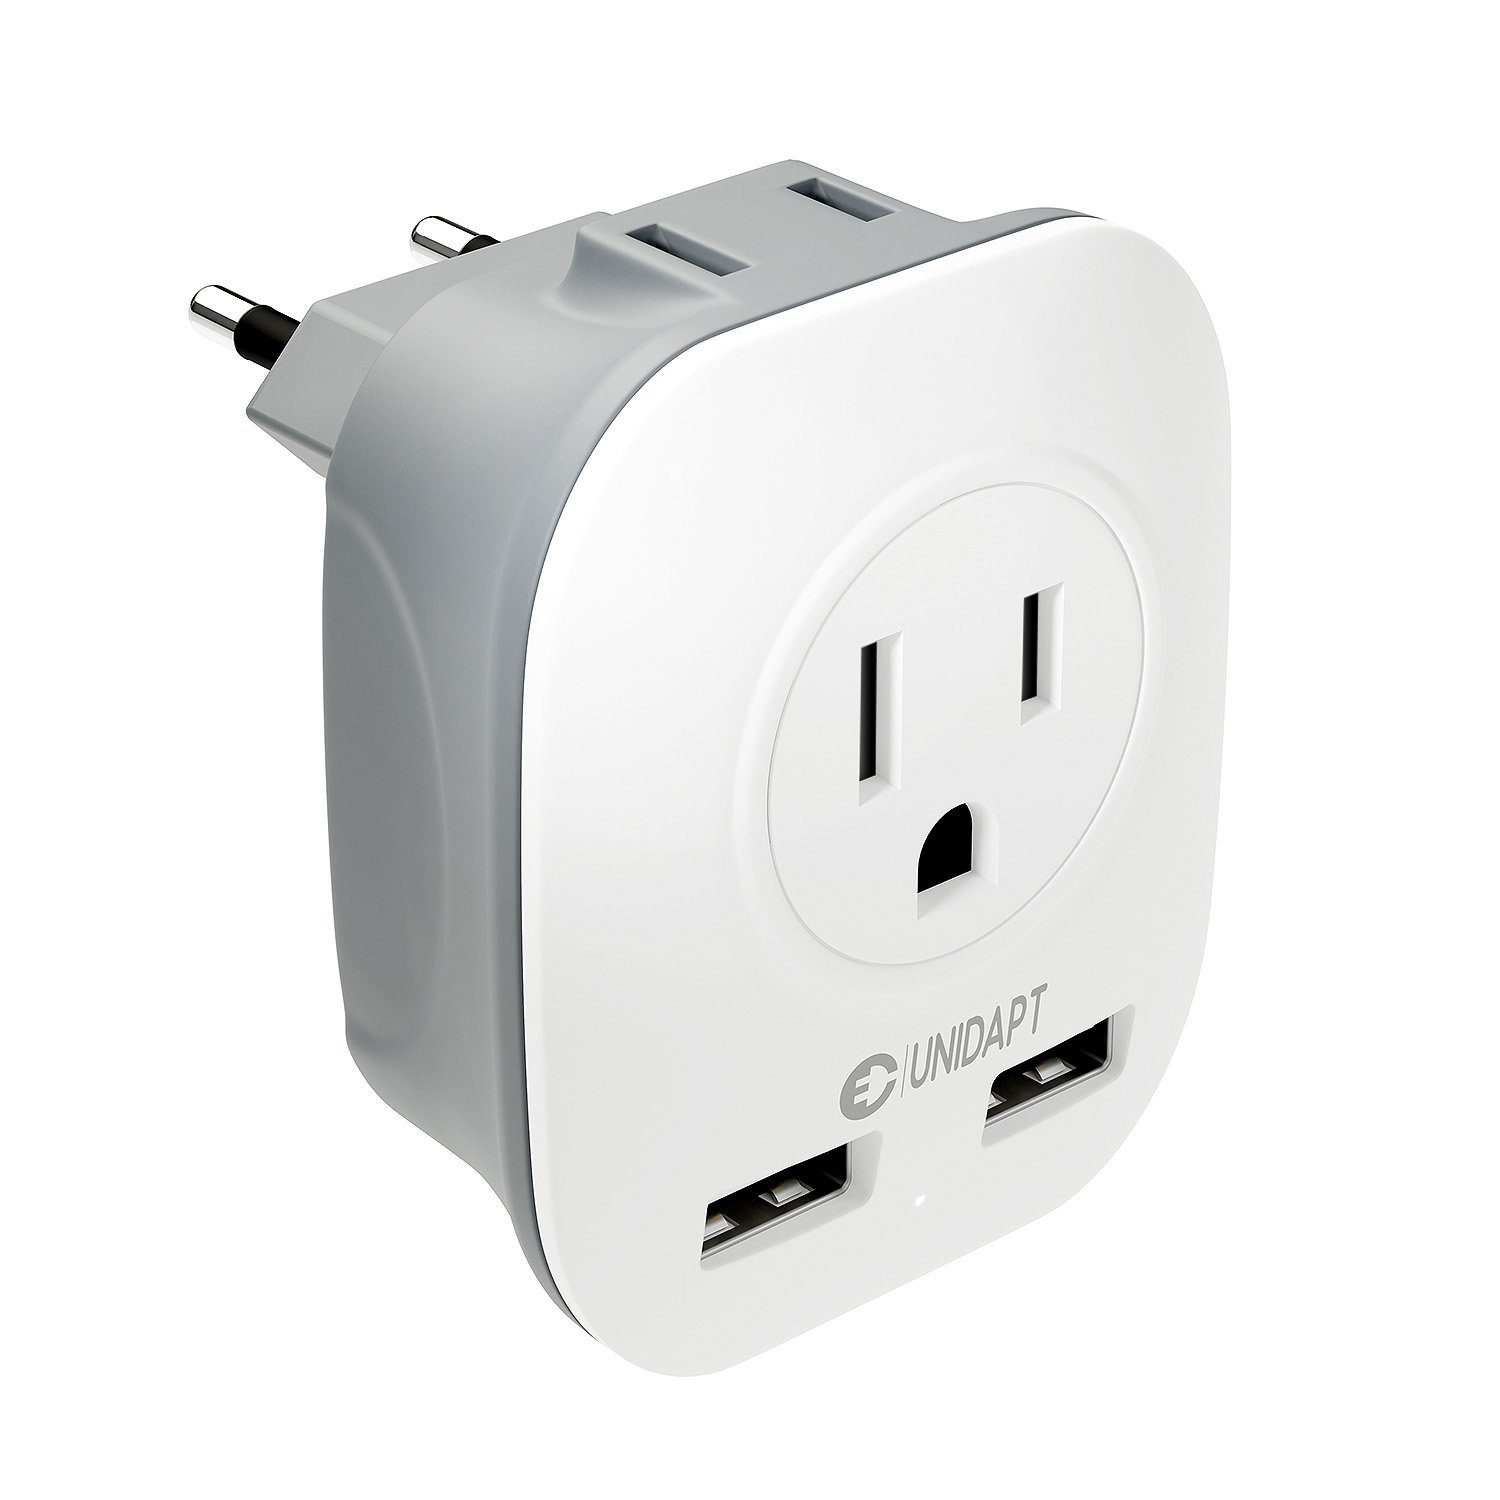 USA to European Plug Adapter Type C – International Travel Power Adaptor US to Europe, Unidapt 4 in 1 AC & USB Outlet Wall Adapter for USA to Most of EU